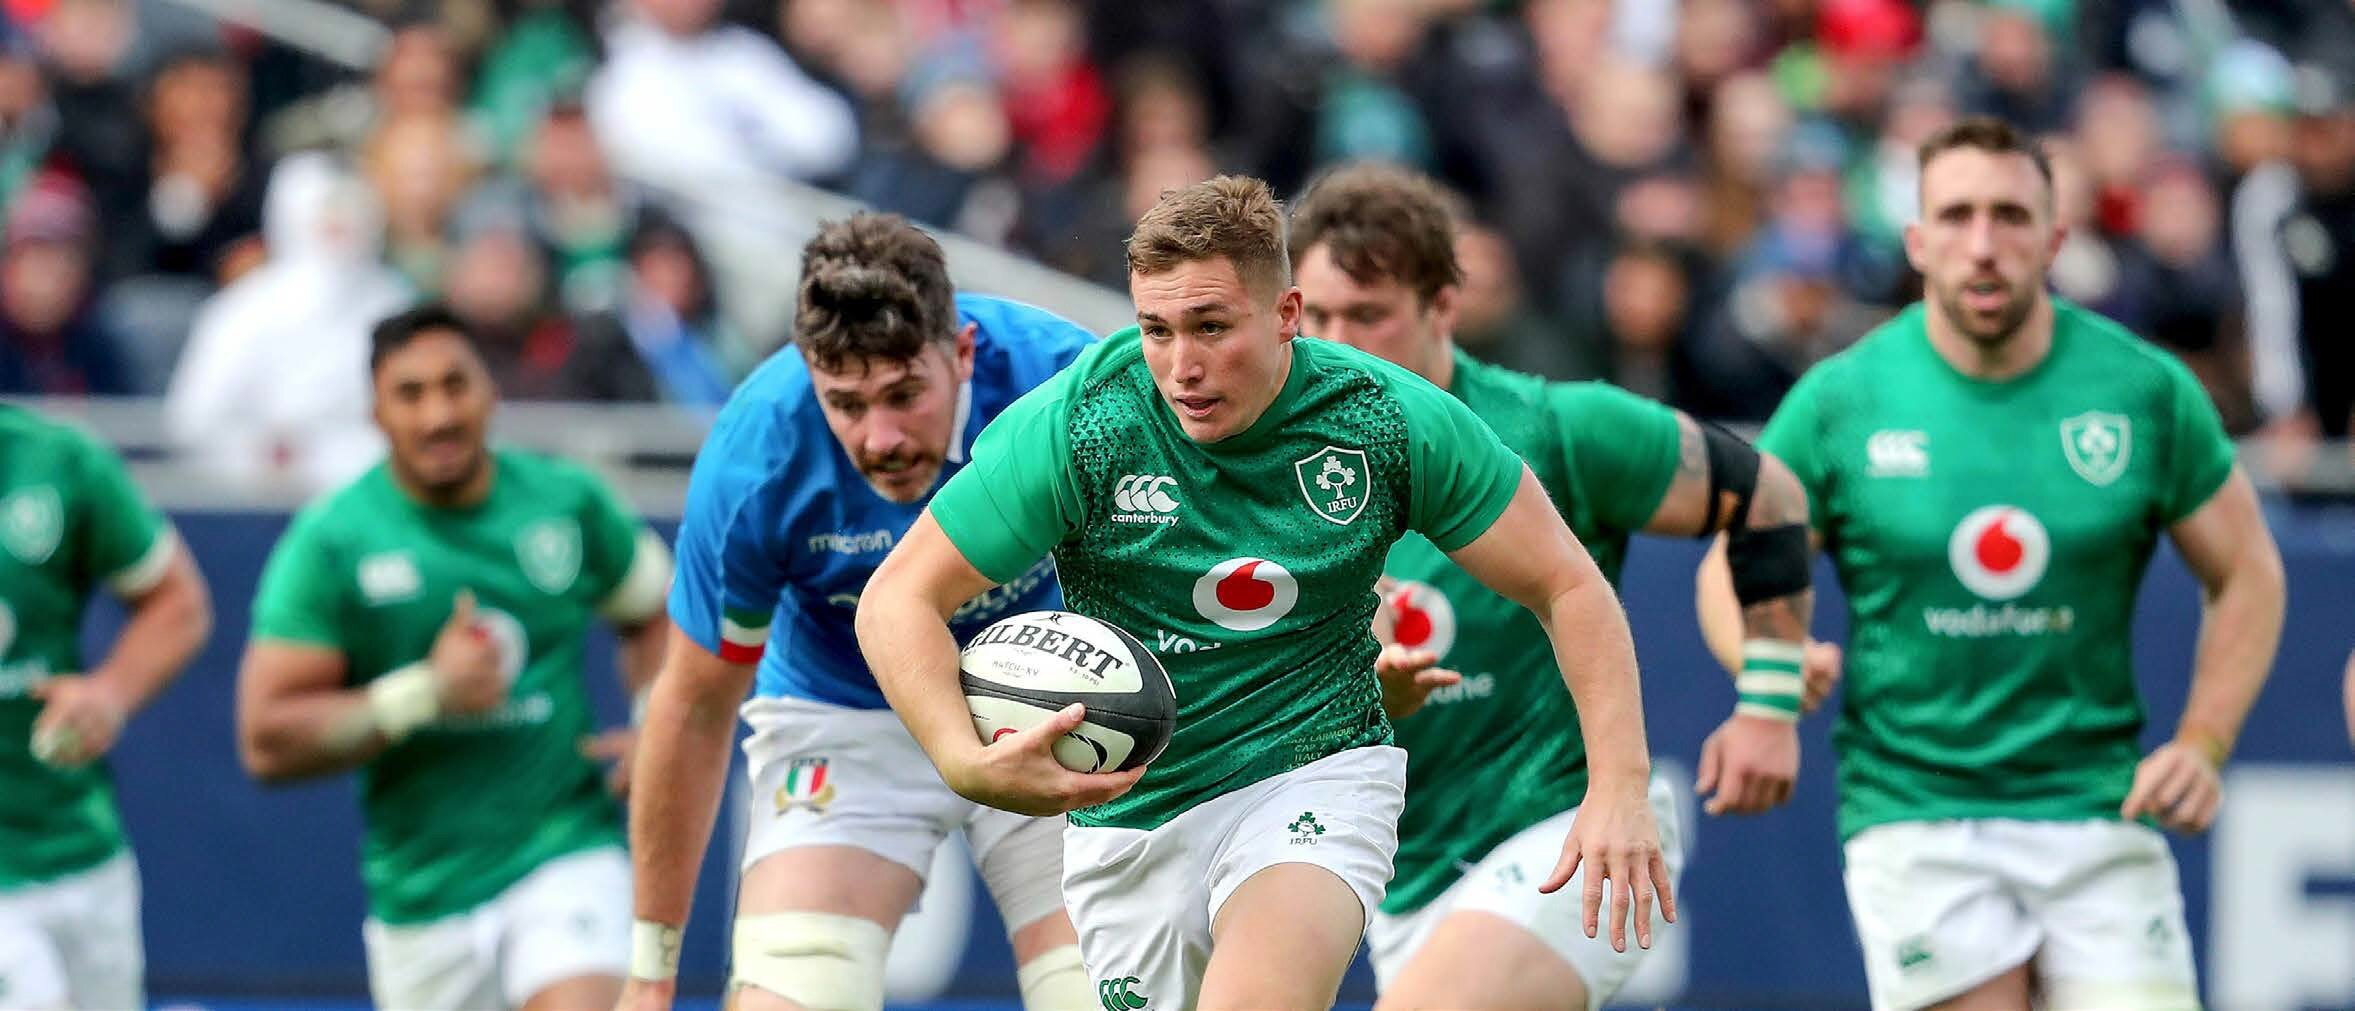 Ireland vs Italy - Guinness Six Nations 2020 - Aviva Stadium, DublinSaturday 7th March 2020